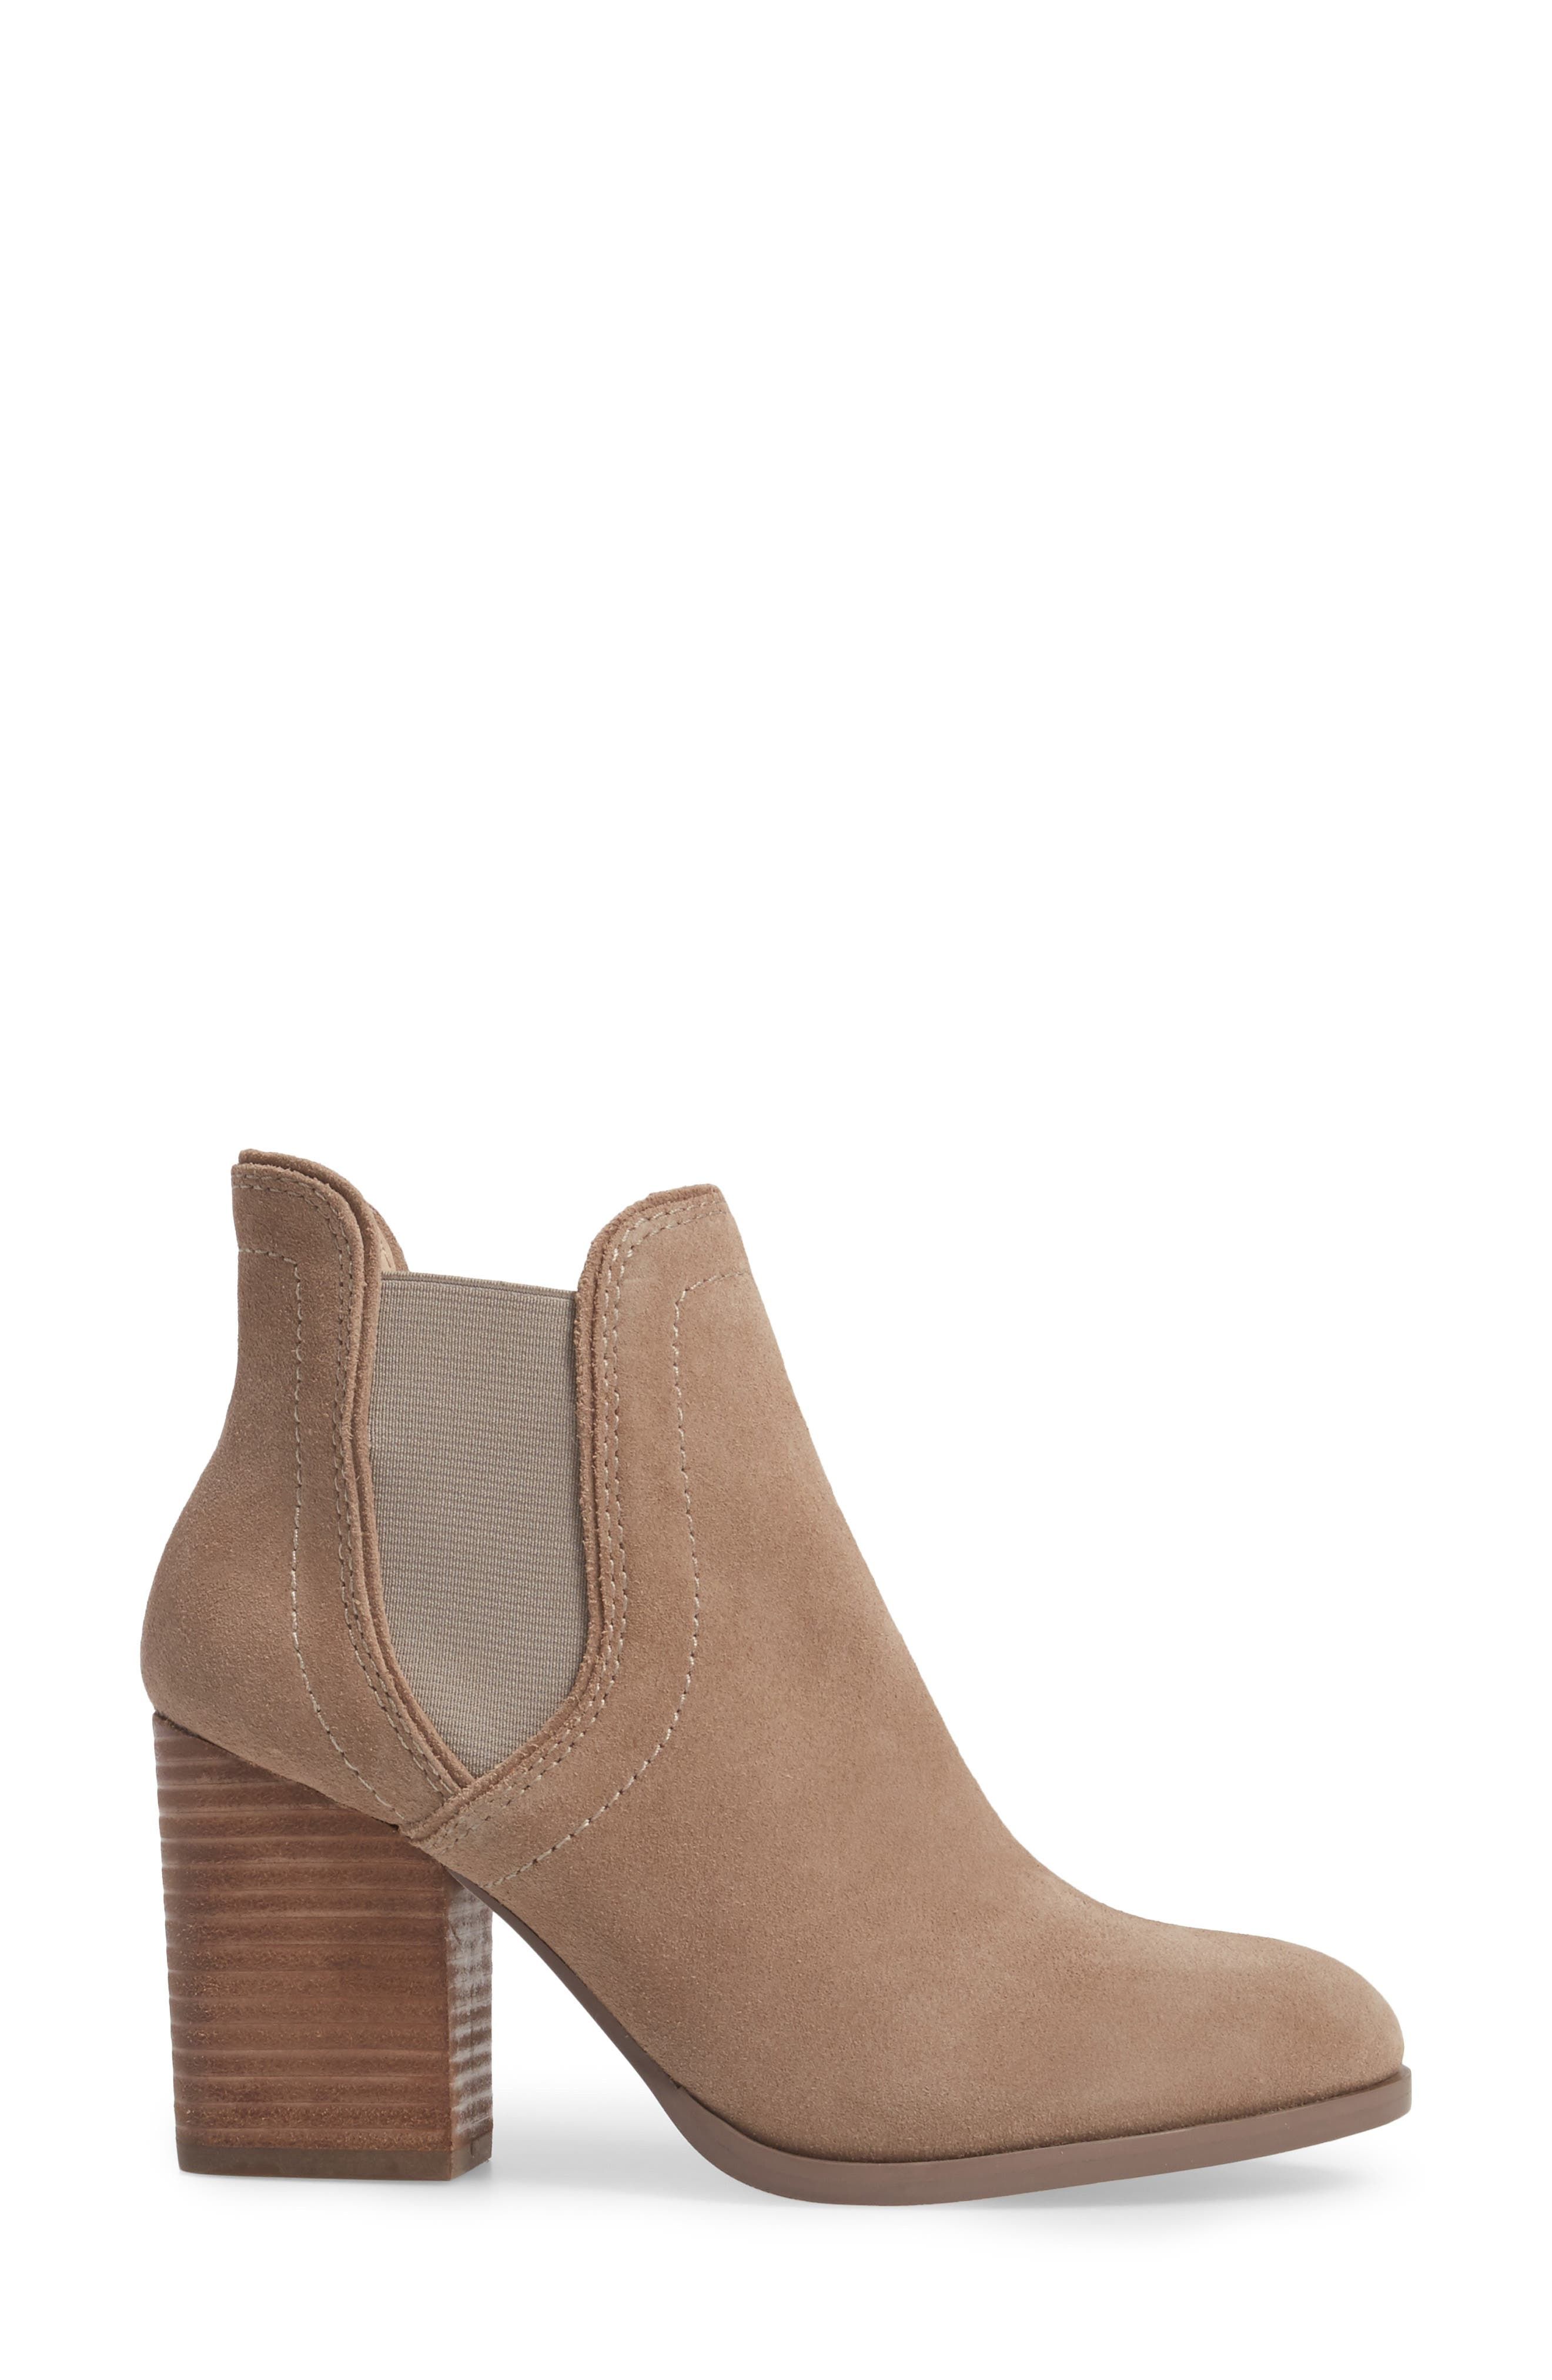 Carrillo Bootie,                             Alternate thumbnail 3, color,                             Taupe